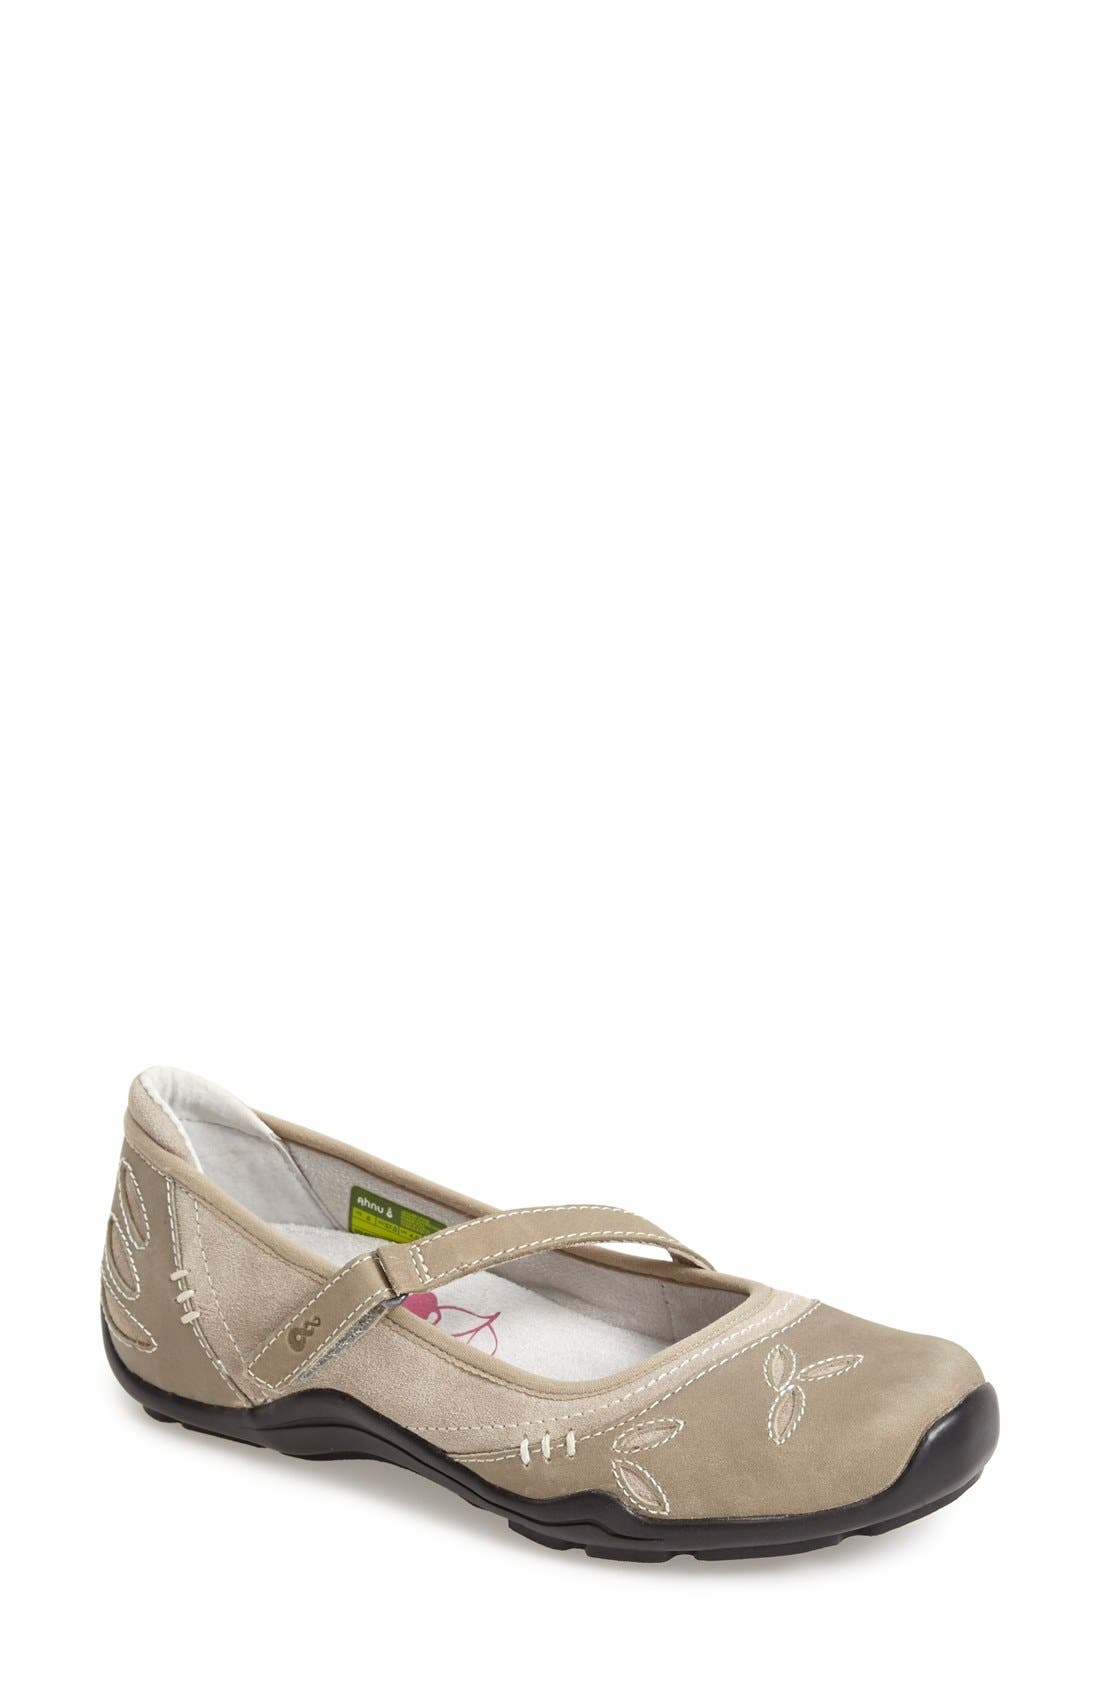 Alternate Image 1 Selected - Ahnu 'Gracie Pro' Leather Flat (Women)